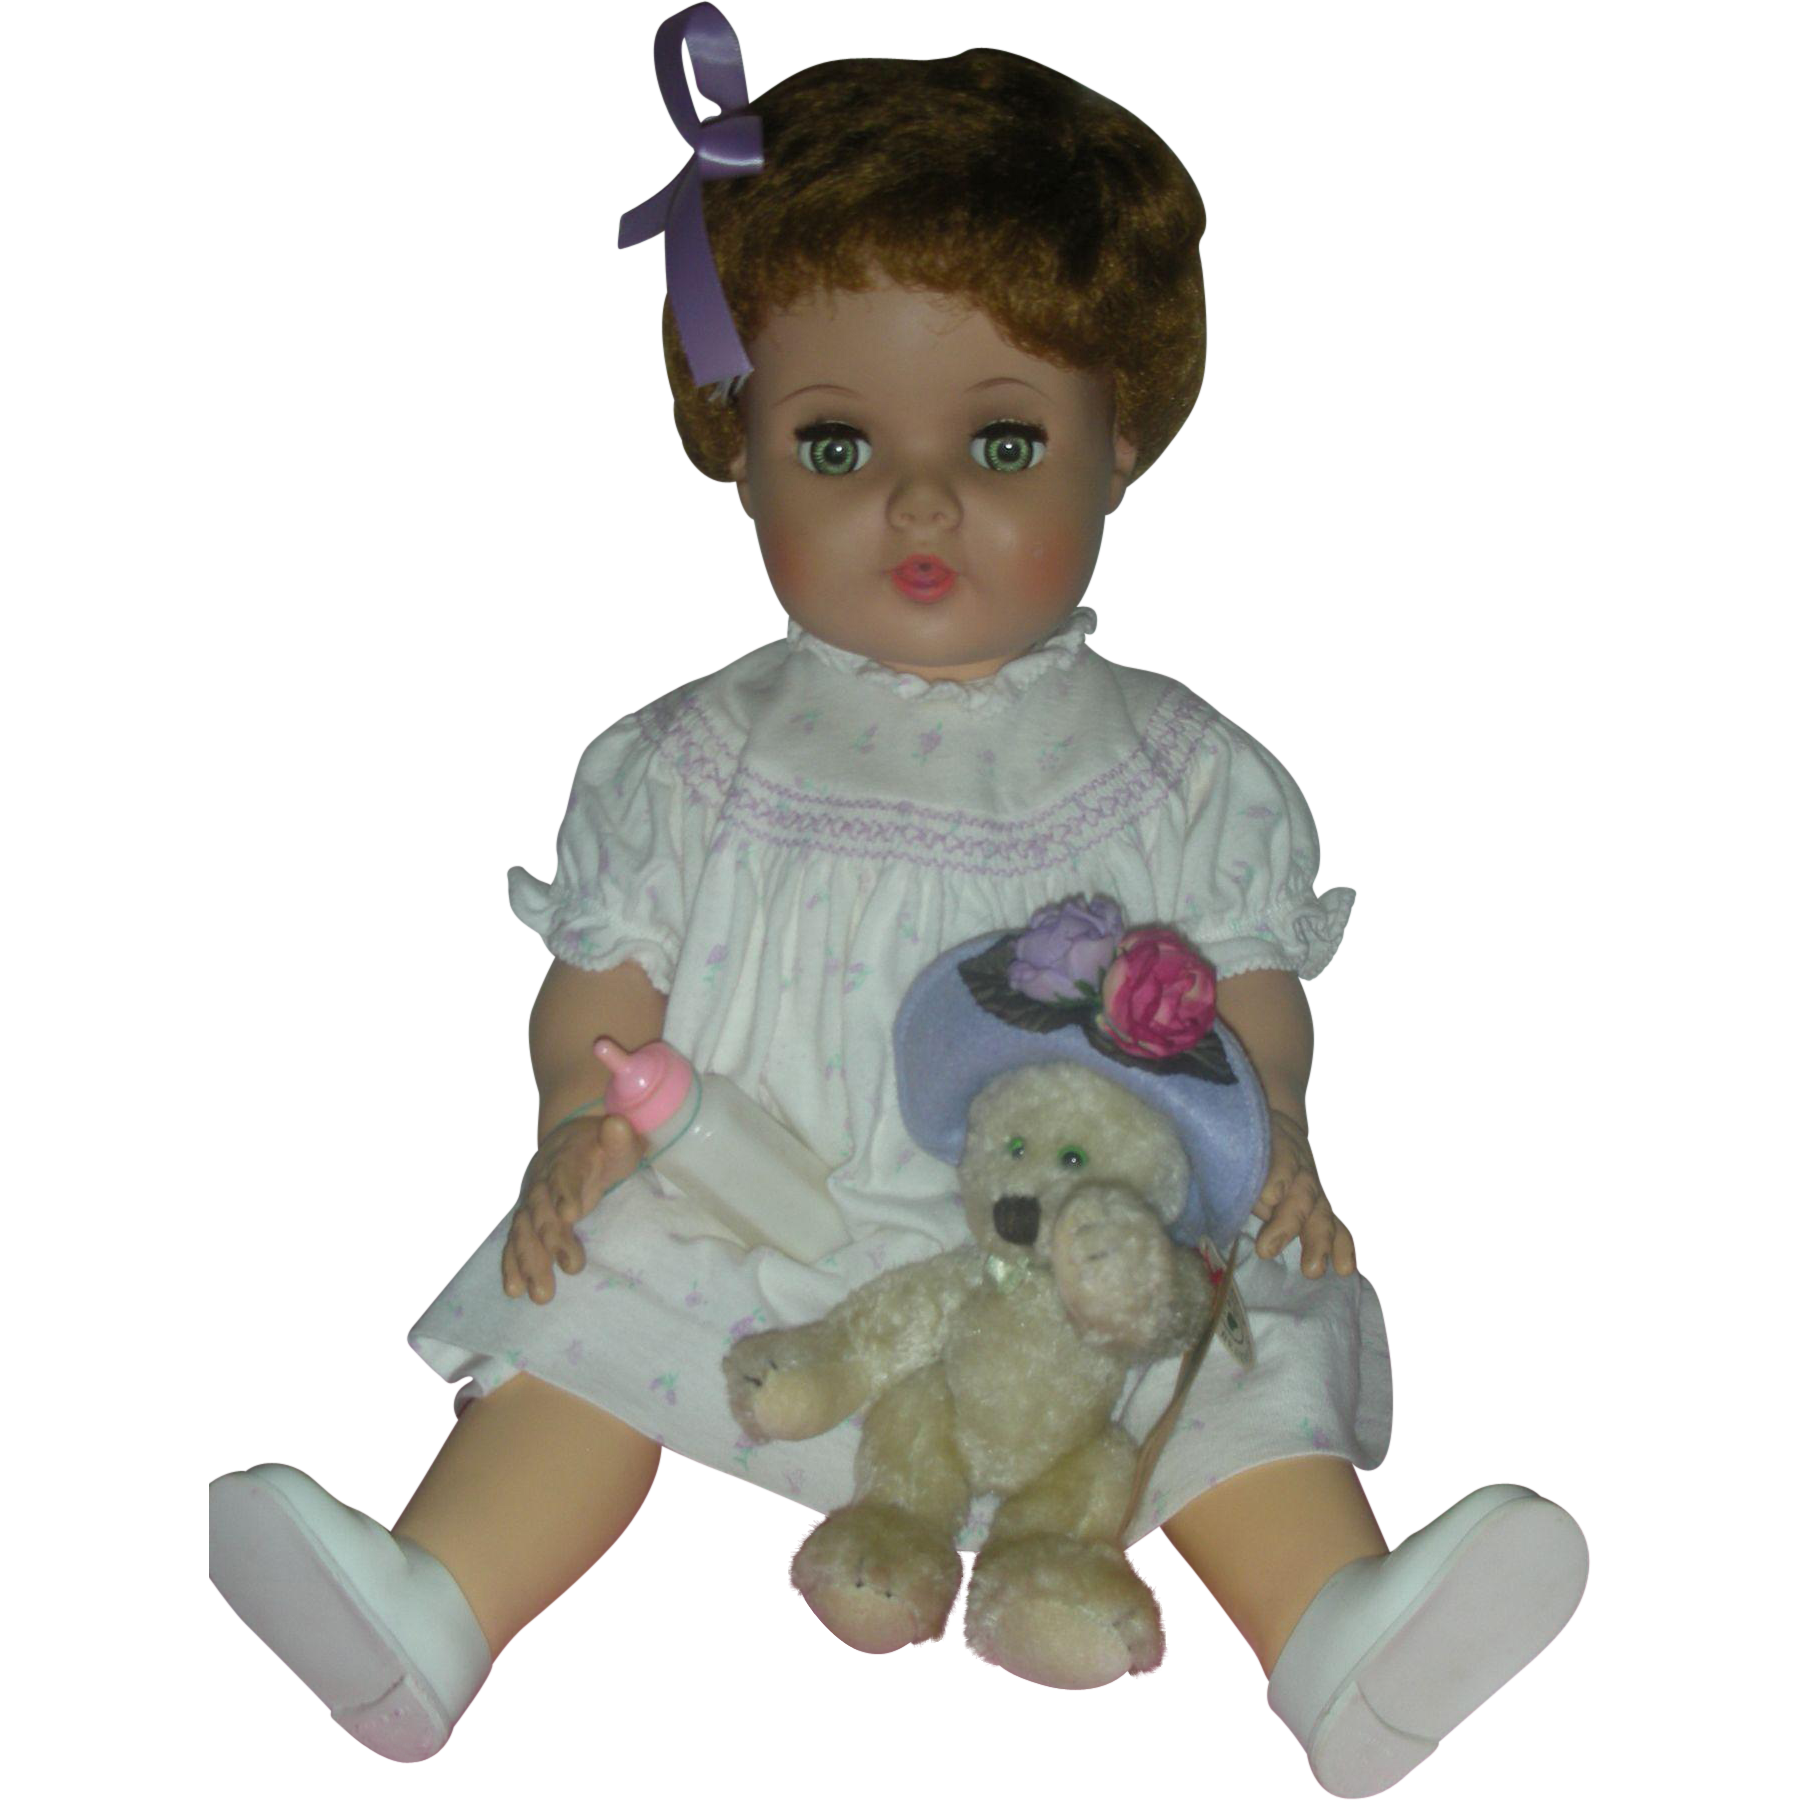 Vintage American Character Toodles Toddler Doll 22 inch Playpal Doll Flirty Eyes